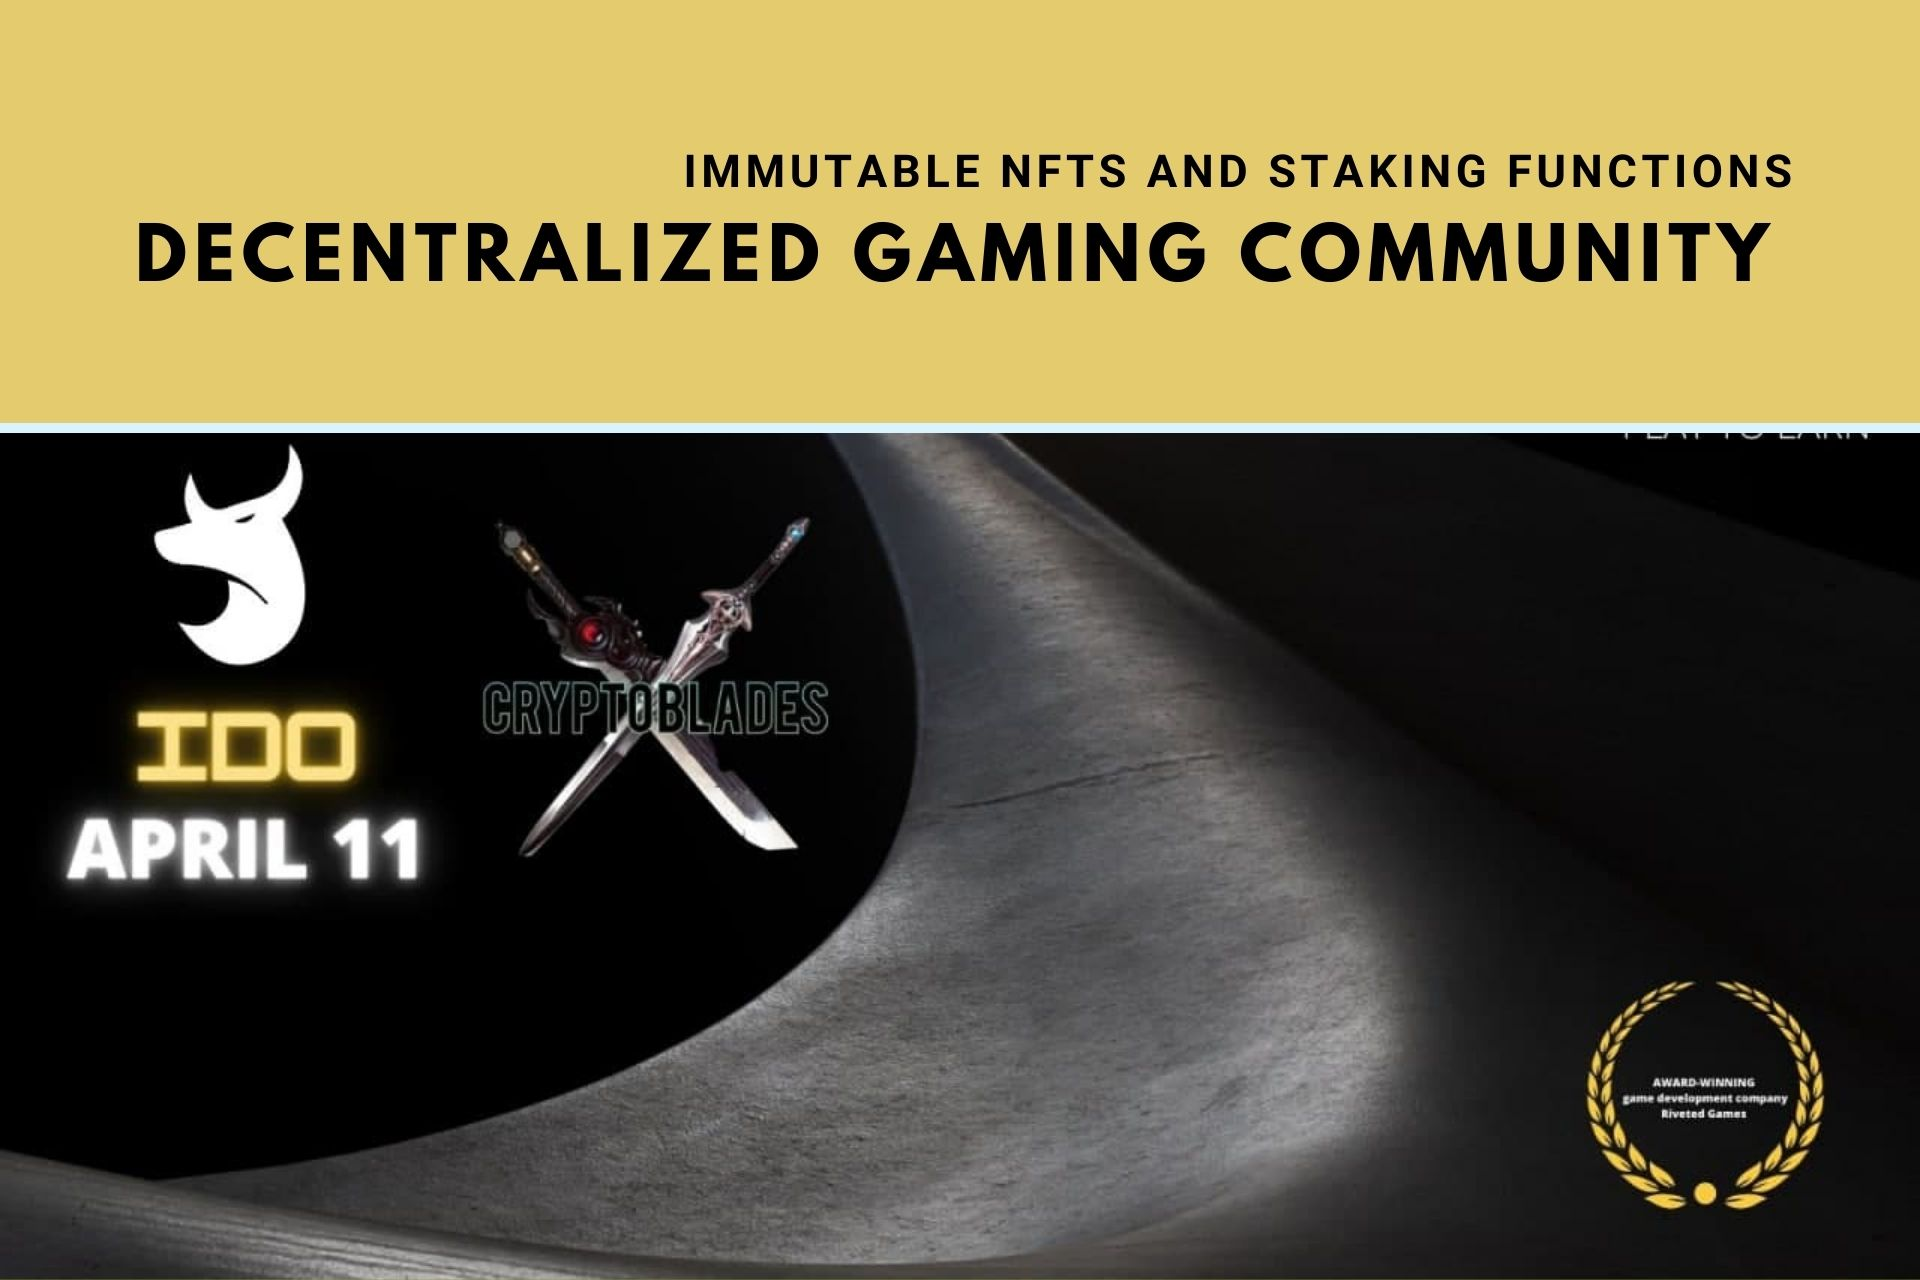 CryptoBlades | Creating a Decentralized Gaming Community With Immutable NFTs and Staking Functions